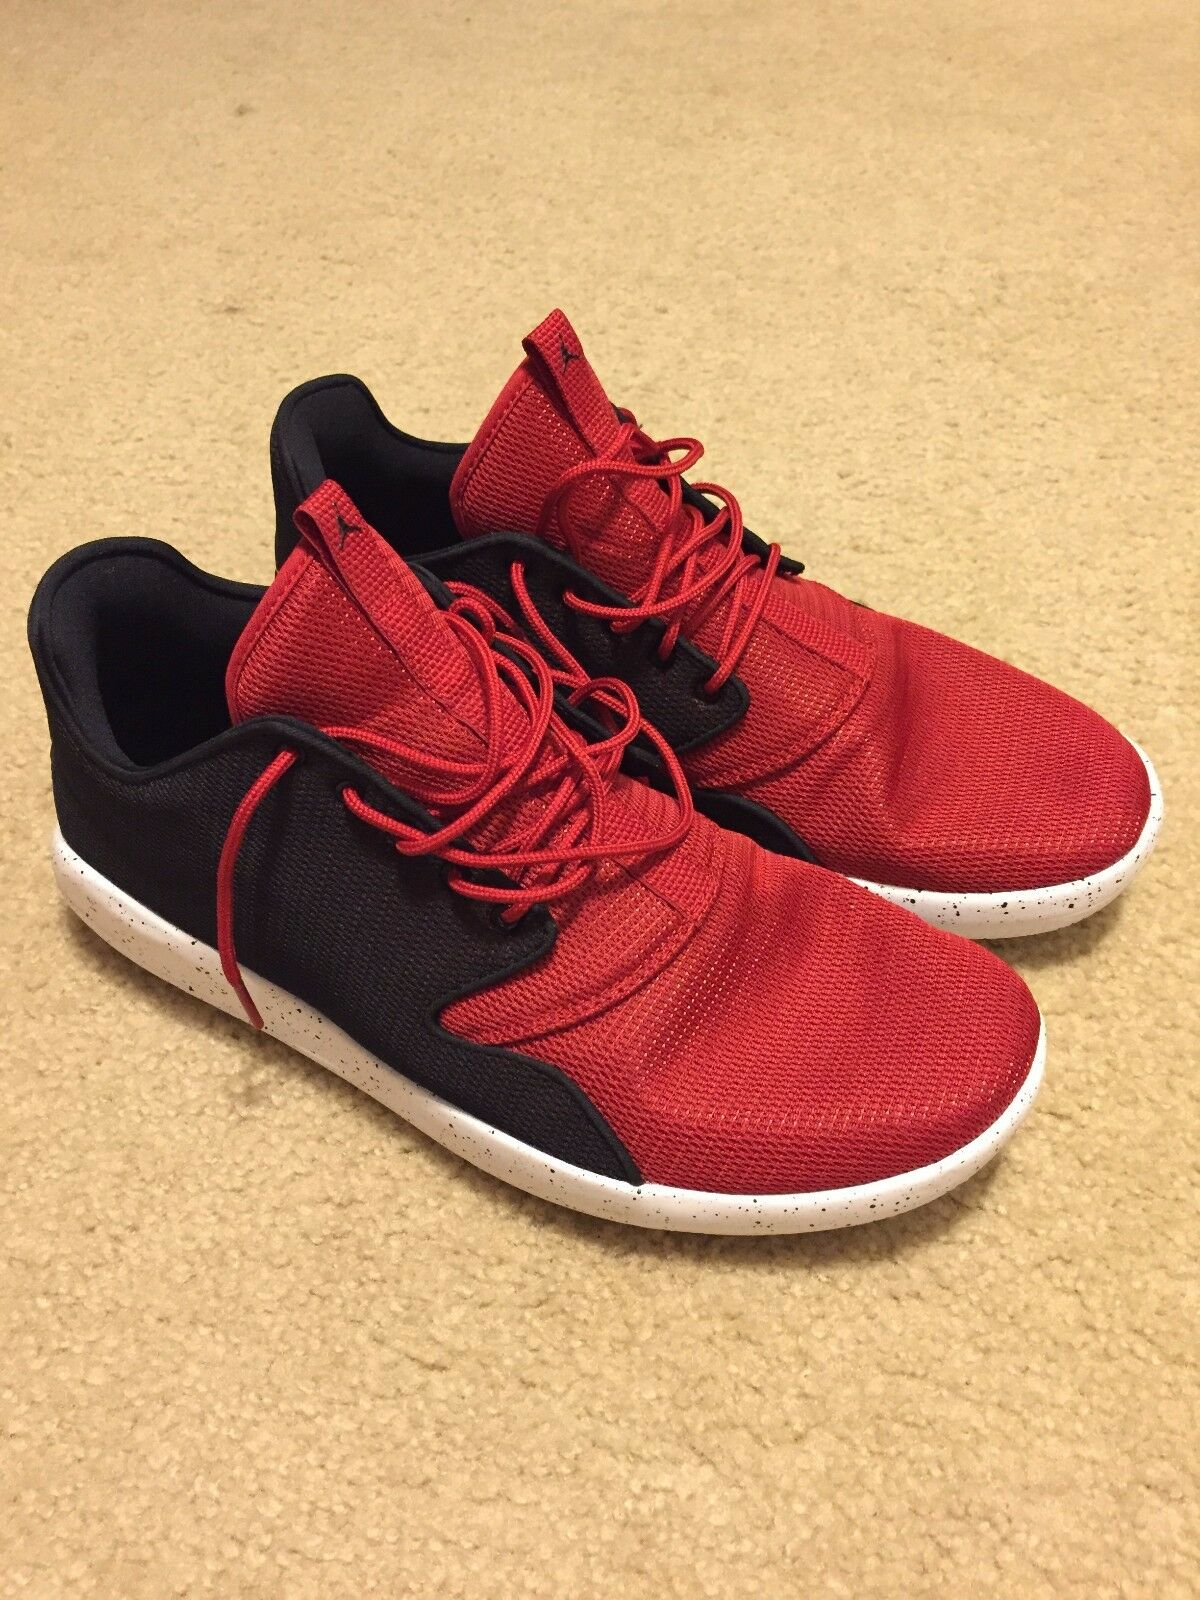 NEW Men's Air Jordan Eclipse Gym Red Black-White Size 13 724010-604 DS